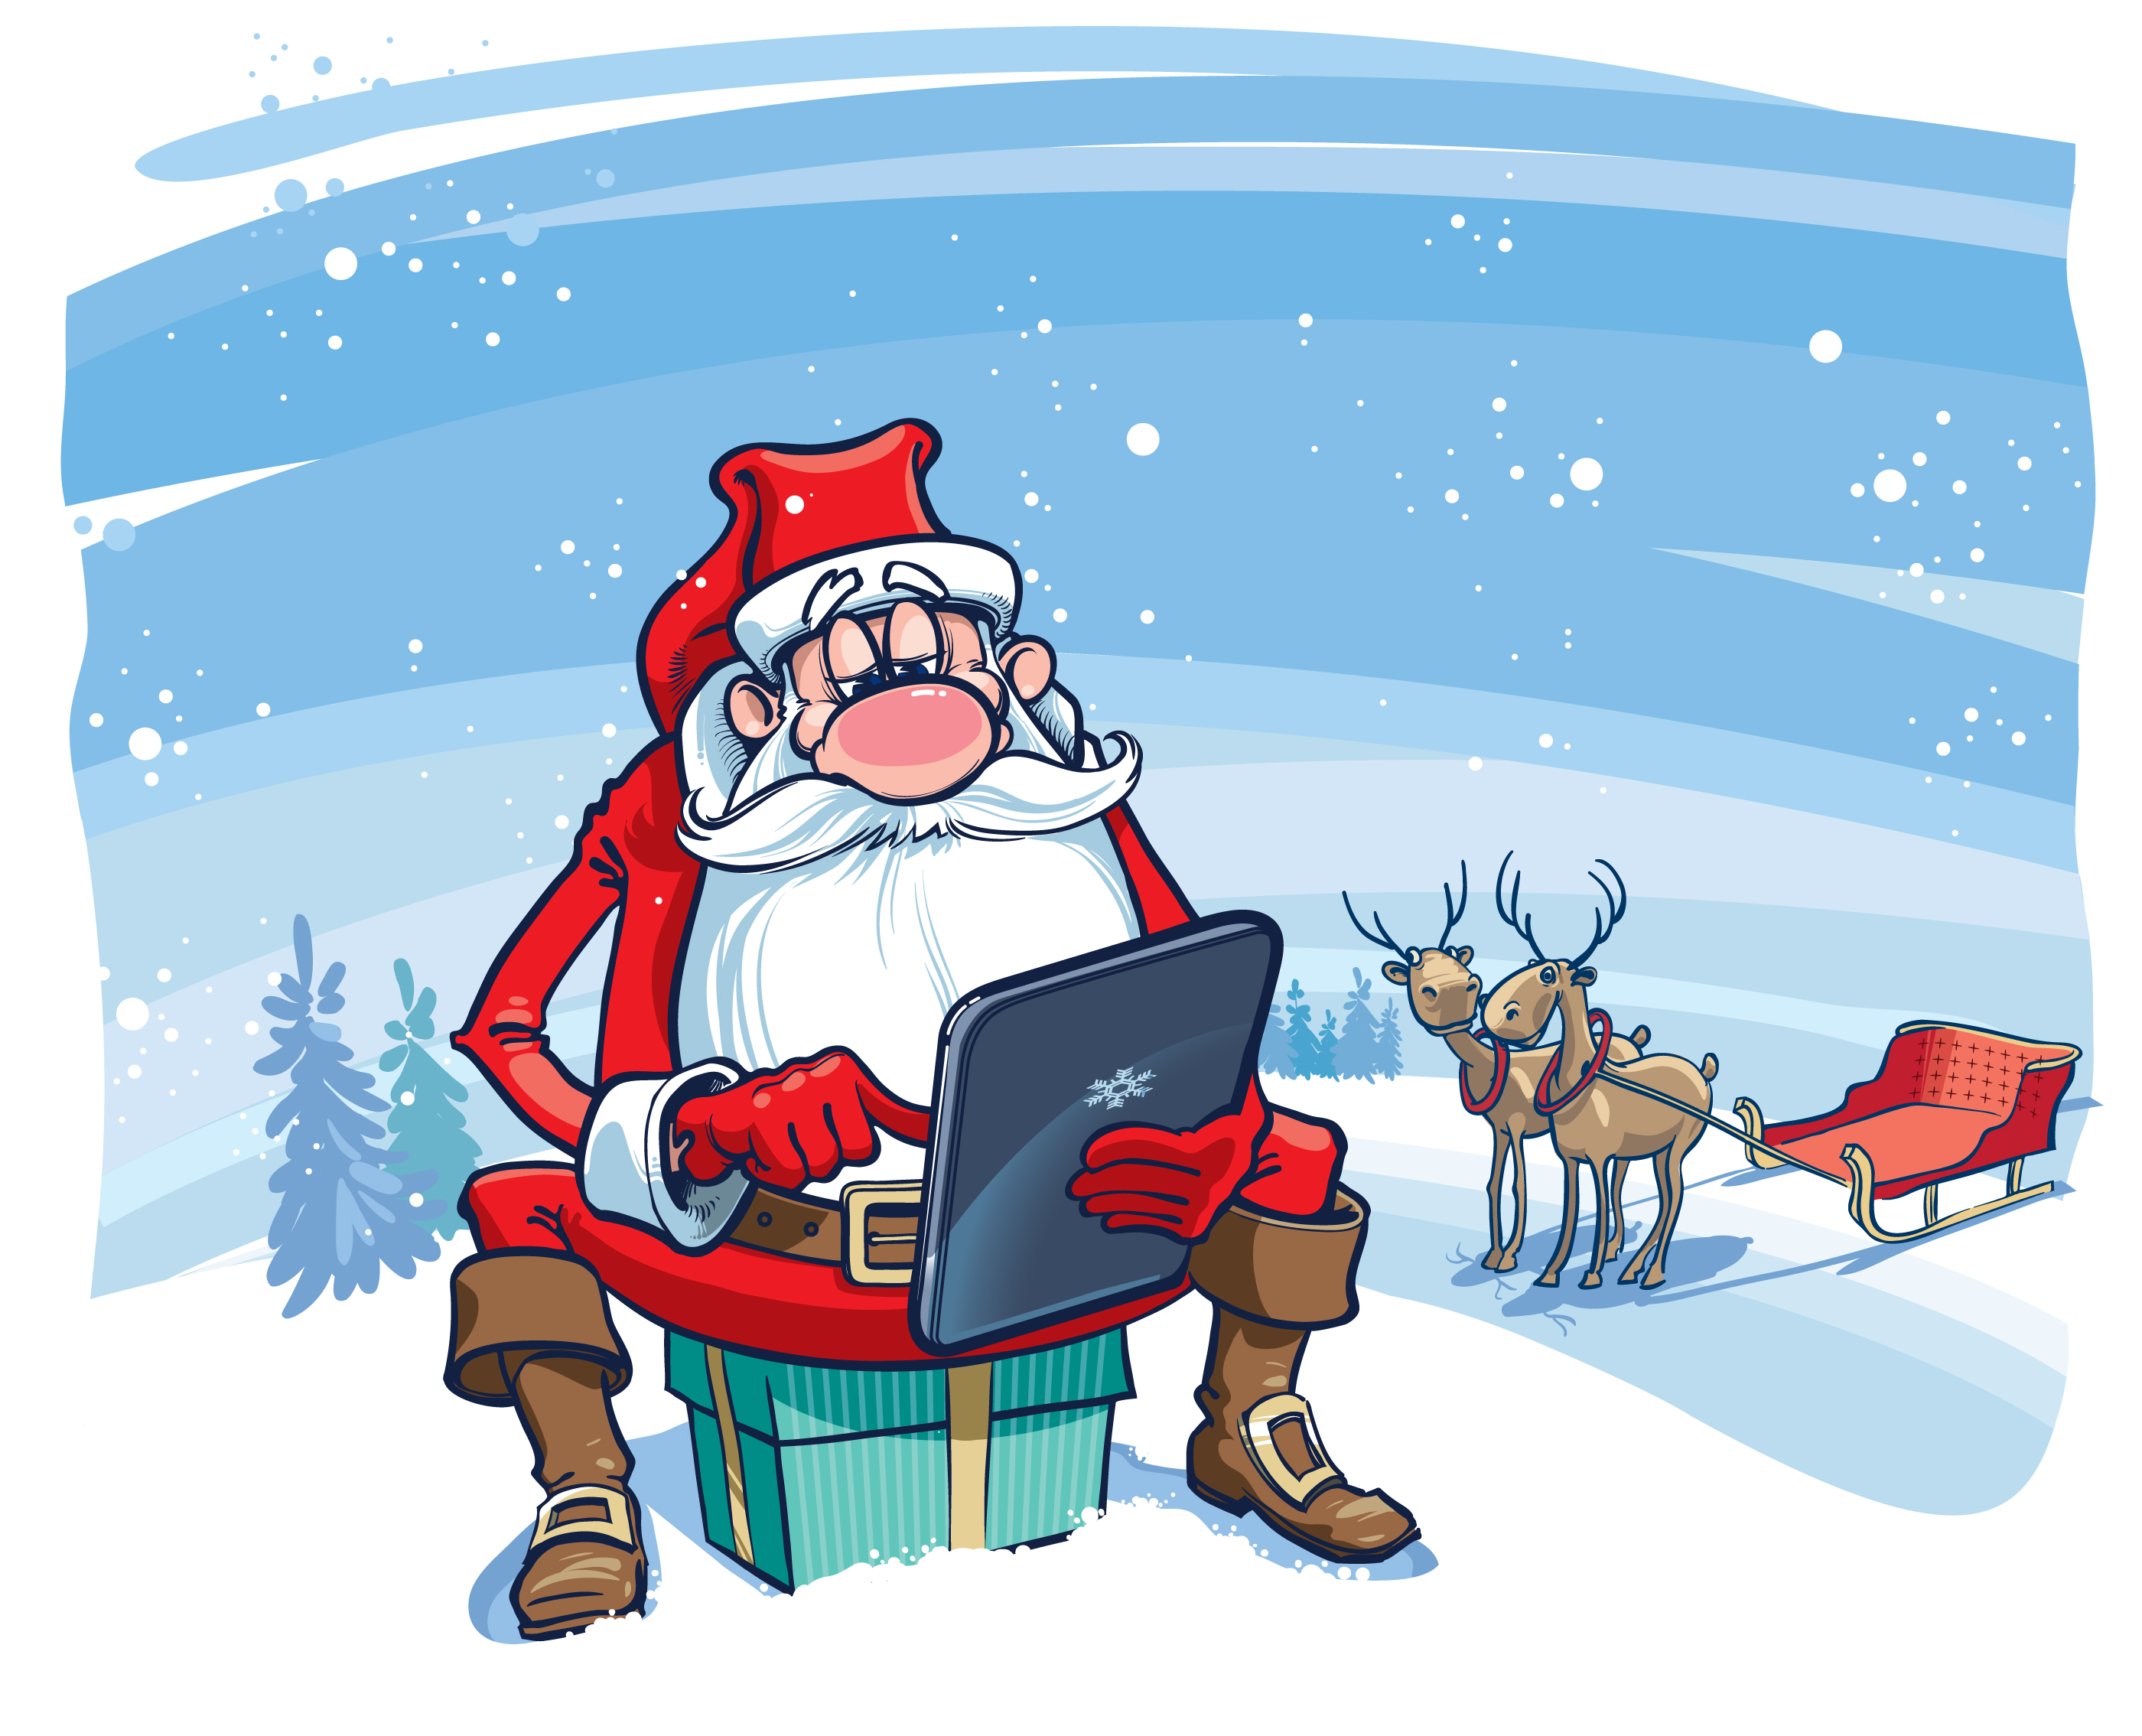 TIBCO Spotfire as Santa's helper